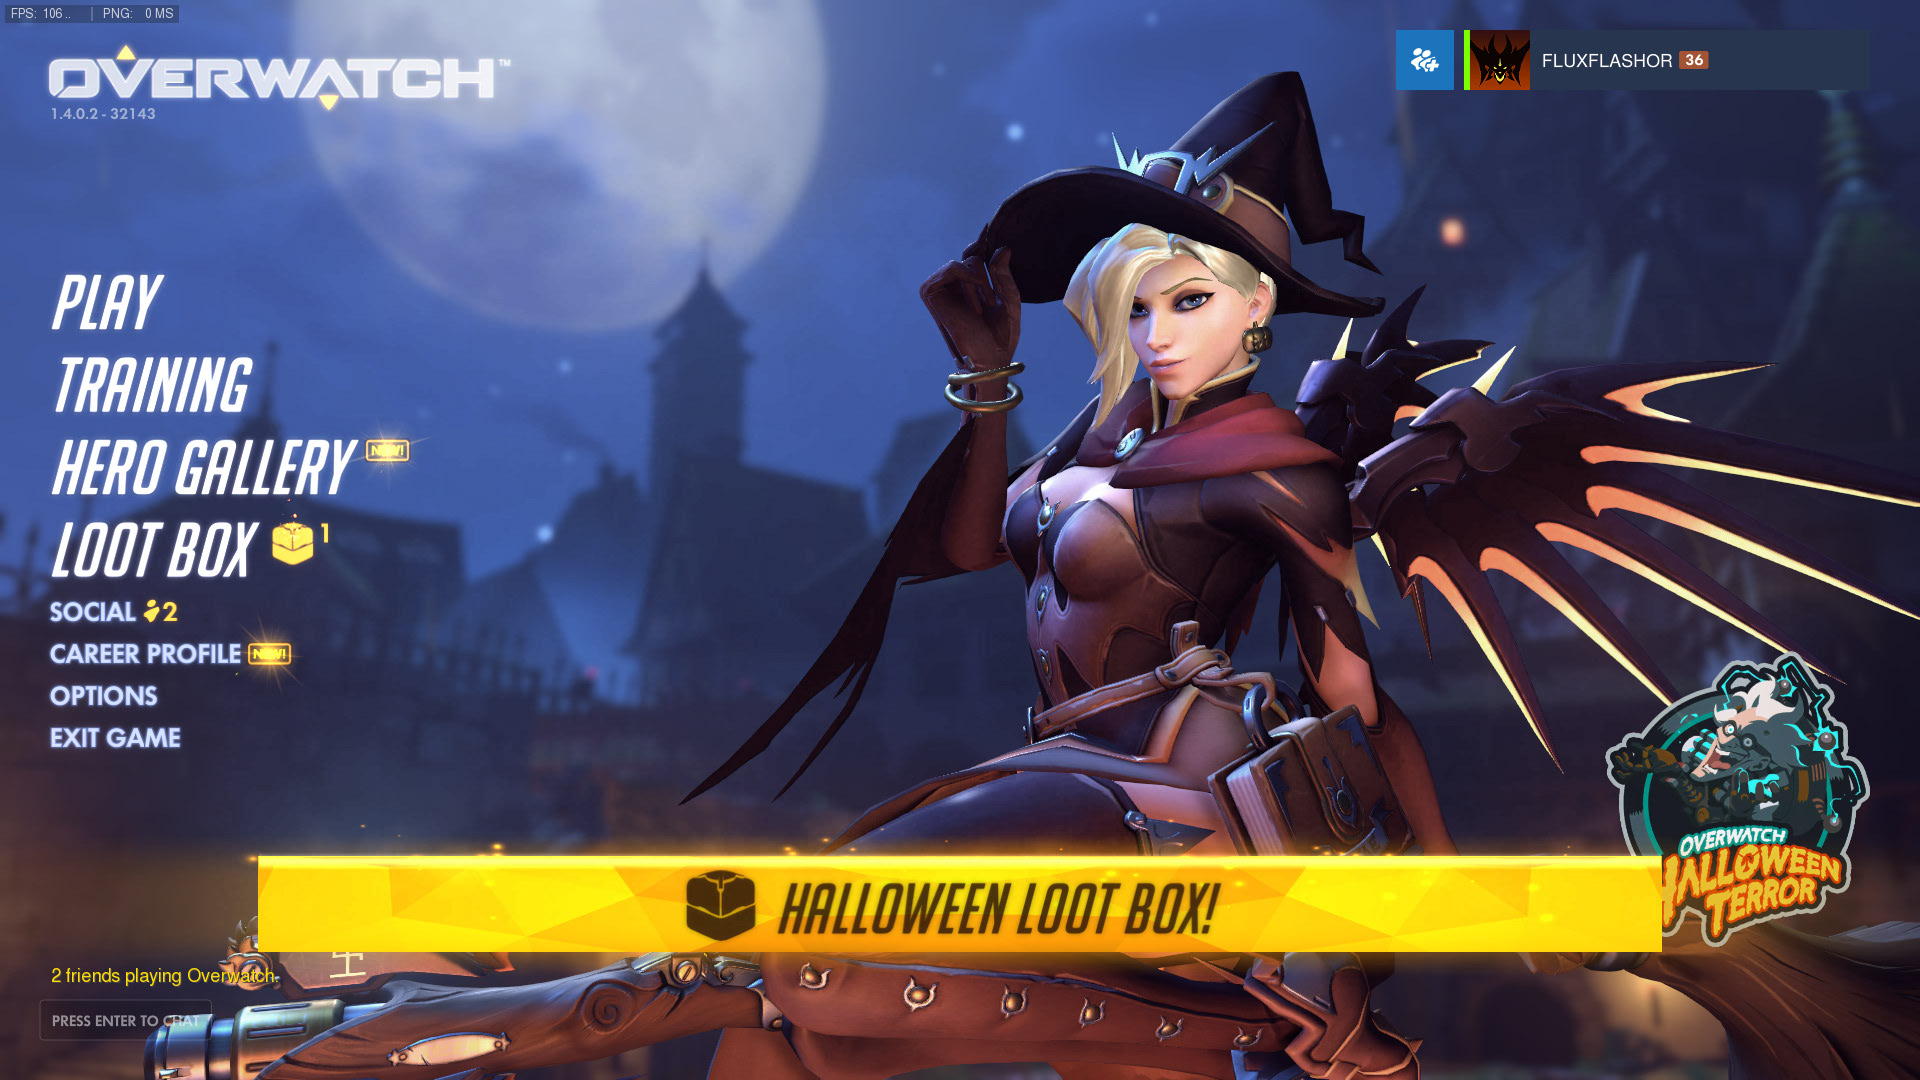 Skins de Halloween do Overwatch reveladas!